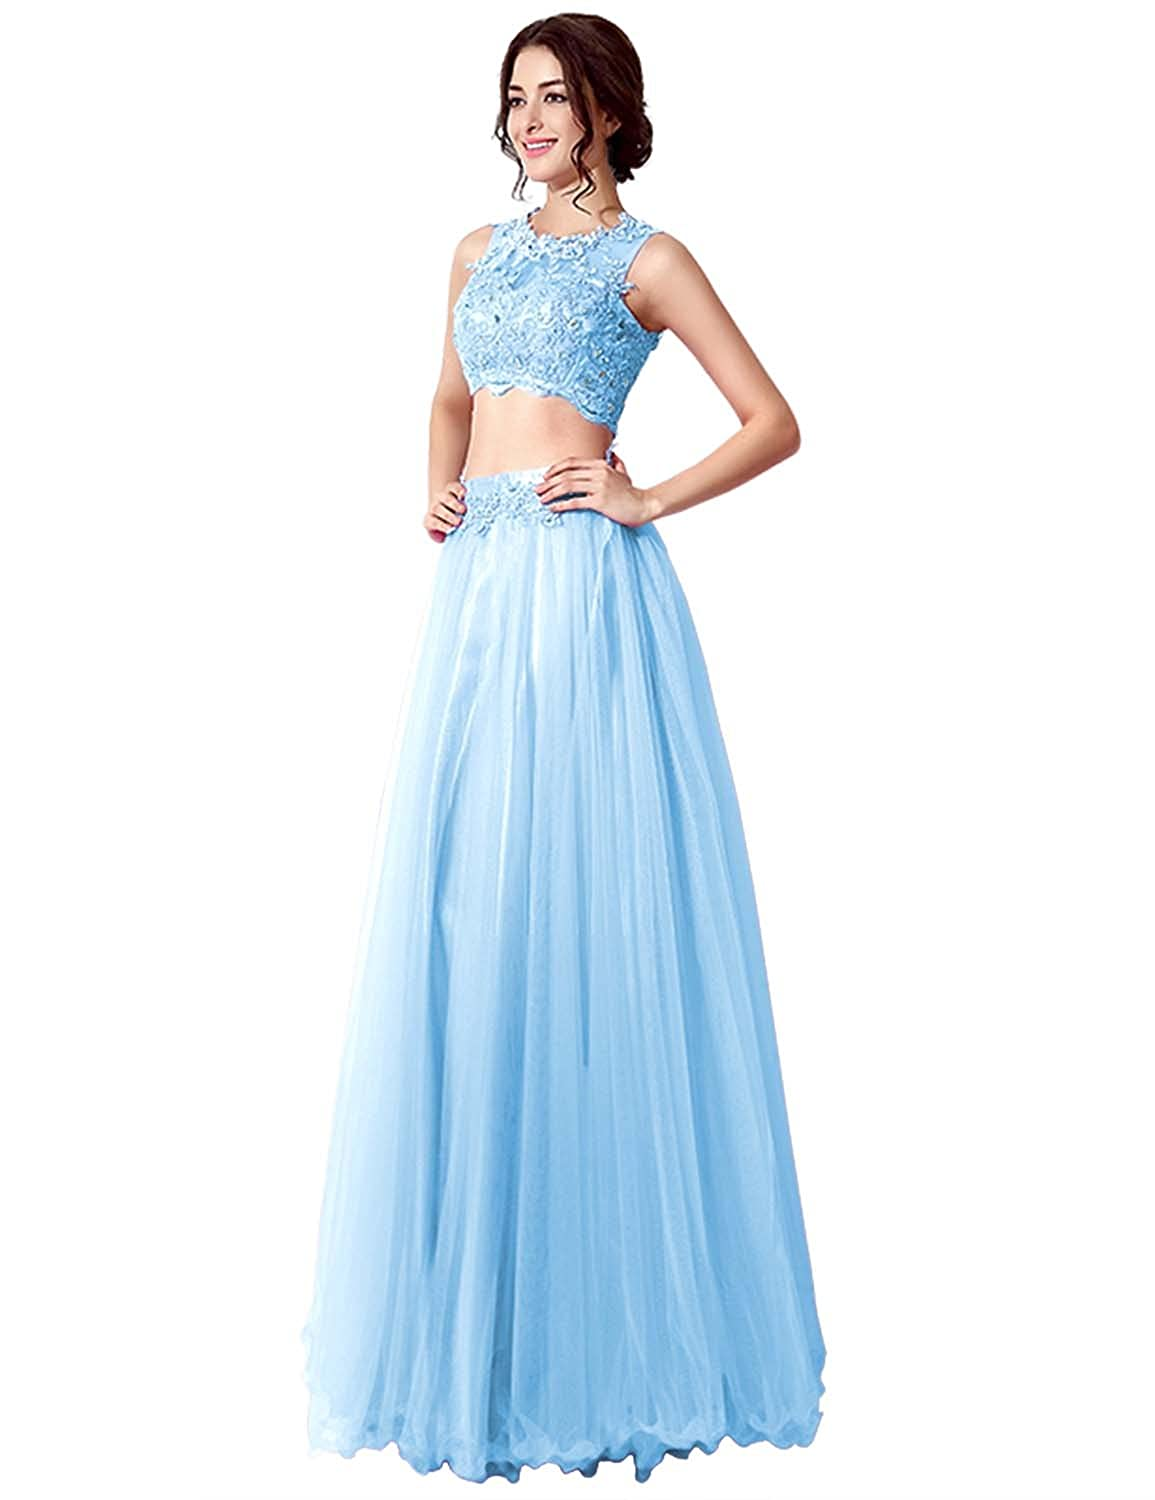 Clearbridal Women's Vintage Lace and Tulle Prom Dress Two Piece Formal Evening Gown with Sequines Crystal Beaded SD205